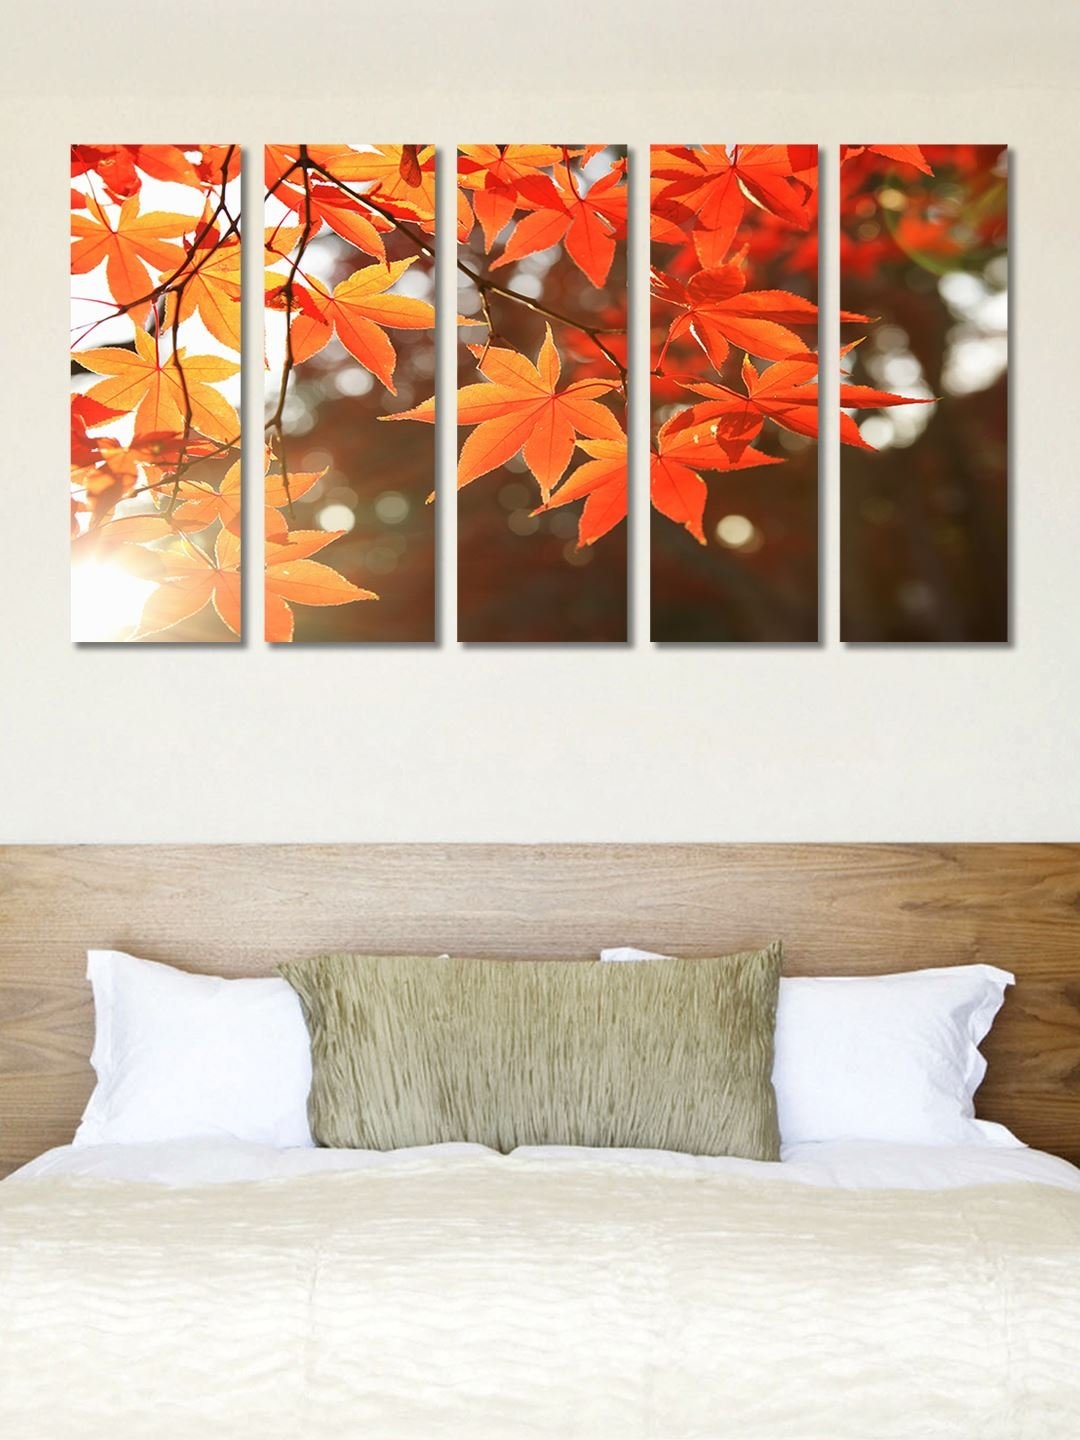 999store Multiple Frames Printed Wooden Frame Yellow Leaves Wall Art